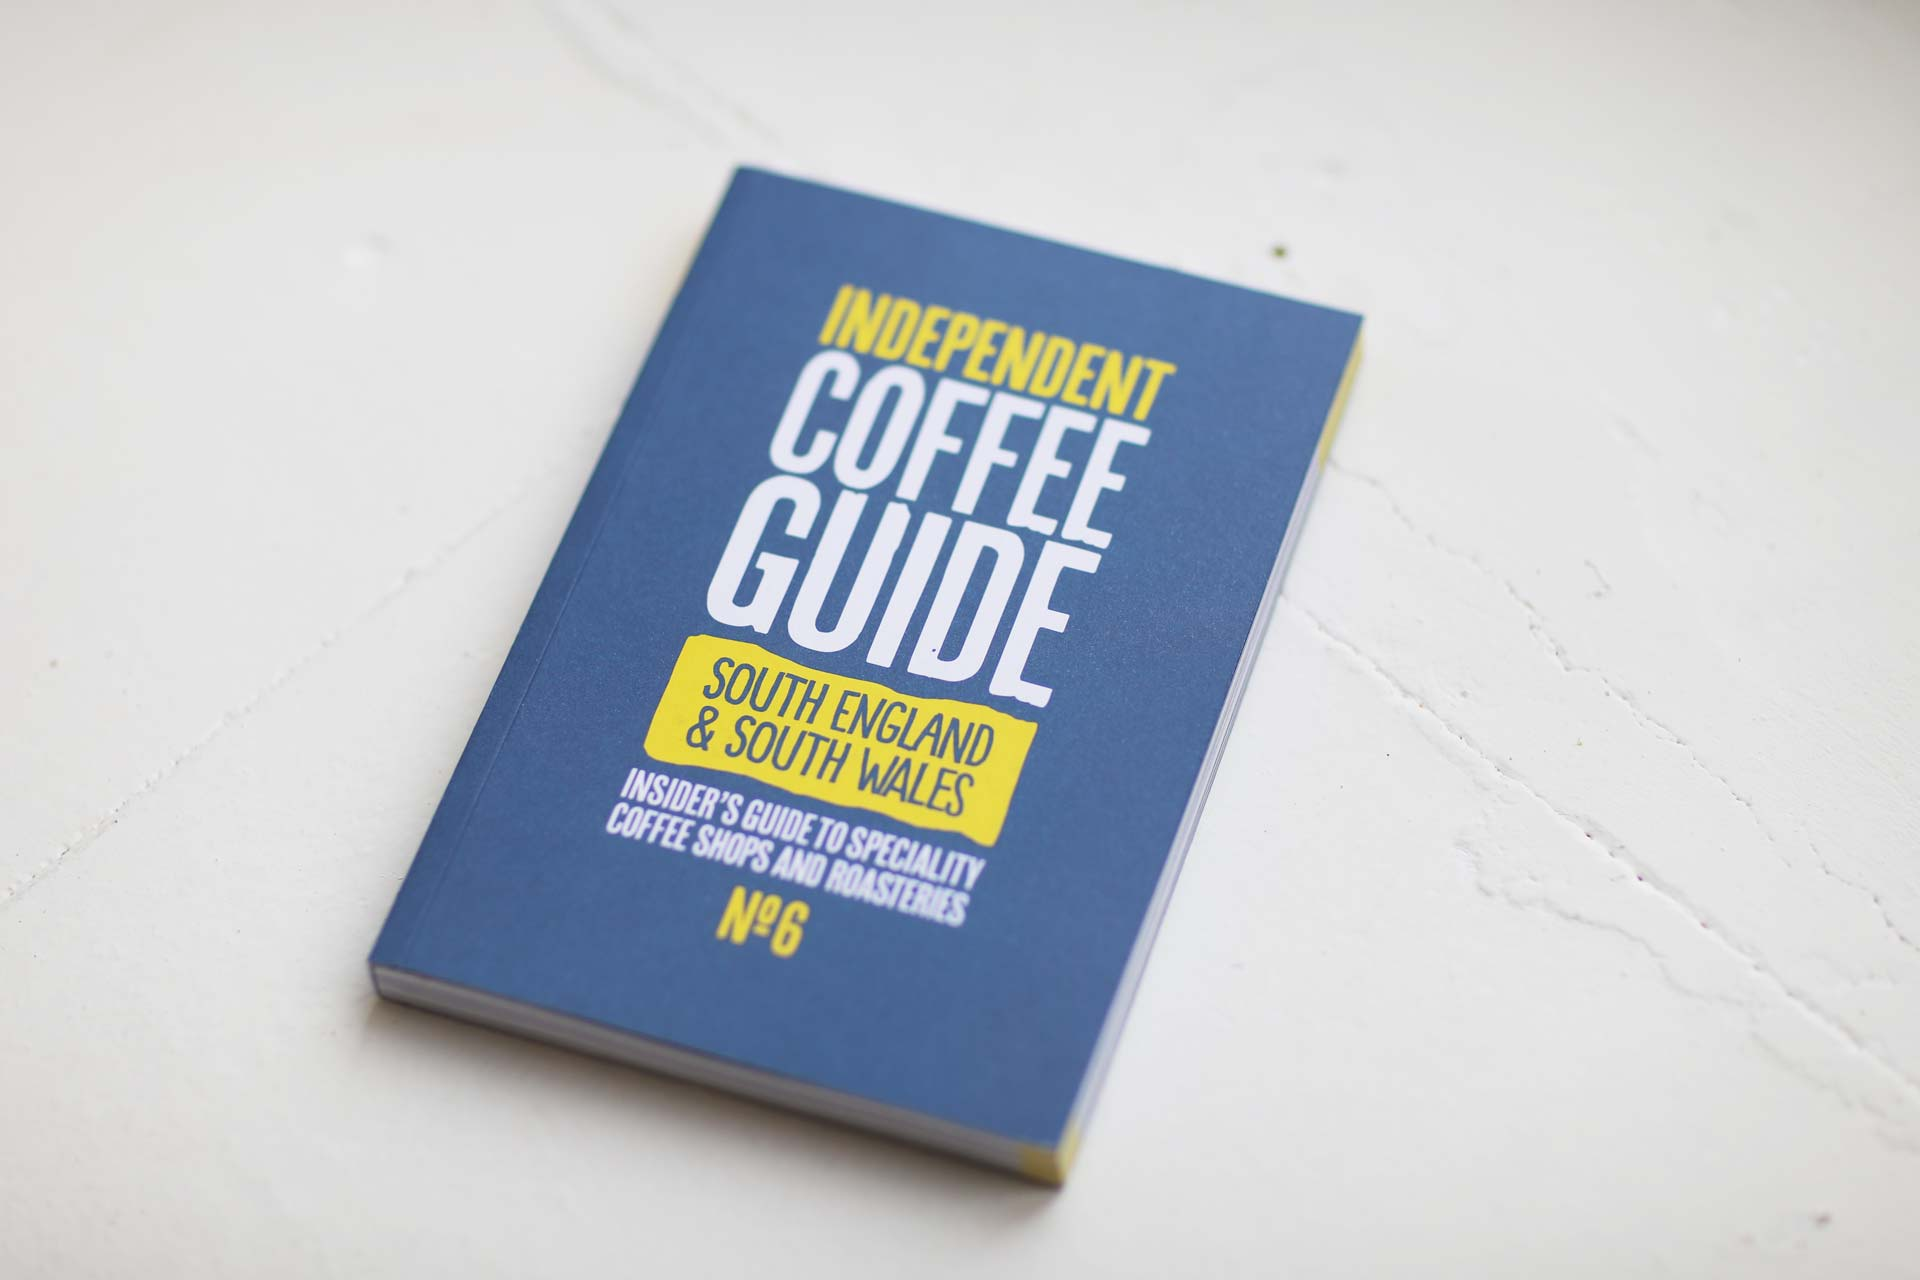 South England and South Wales Indy Coffee Guide No6